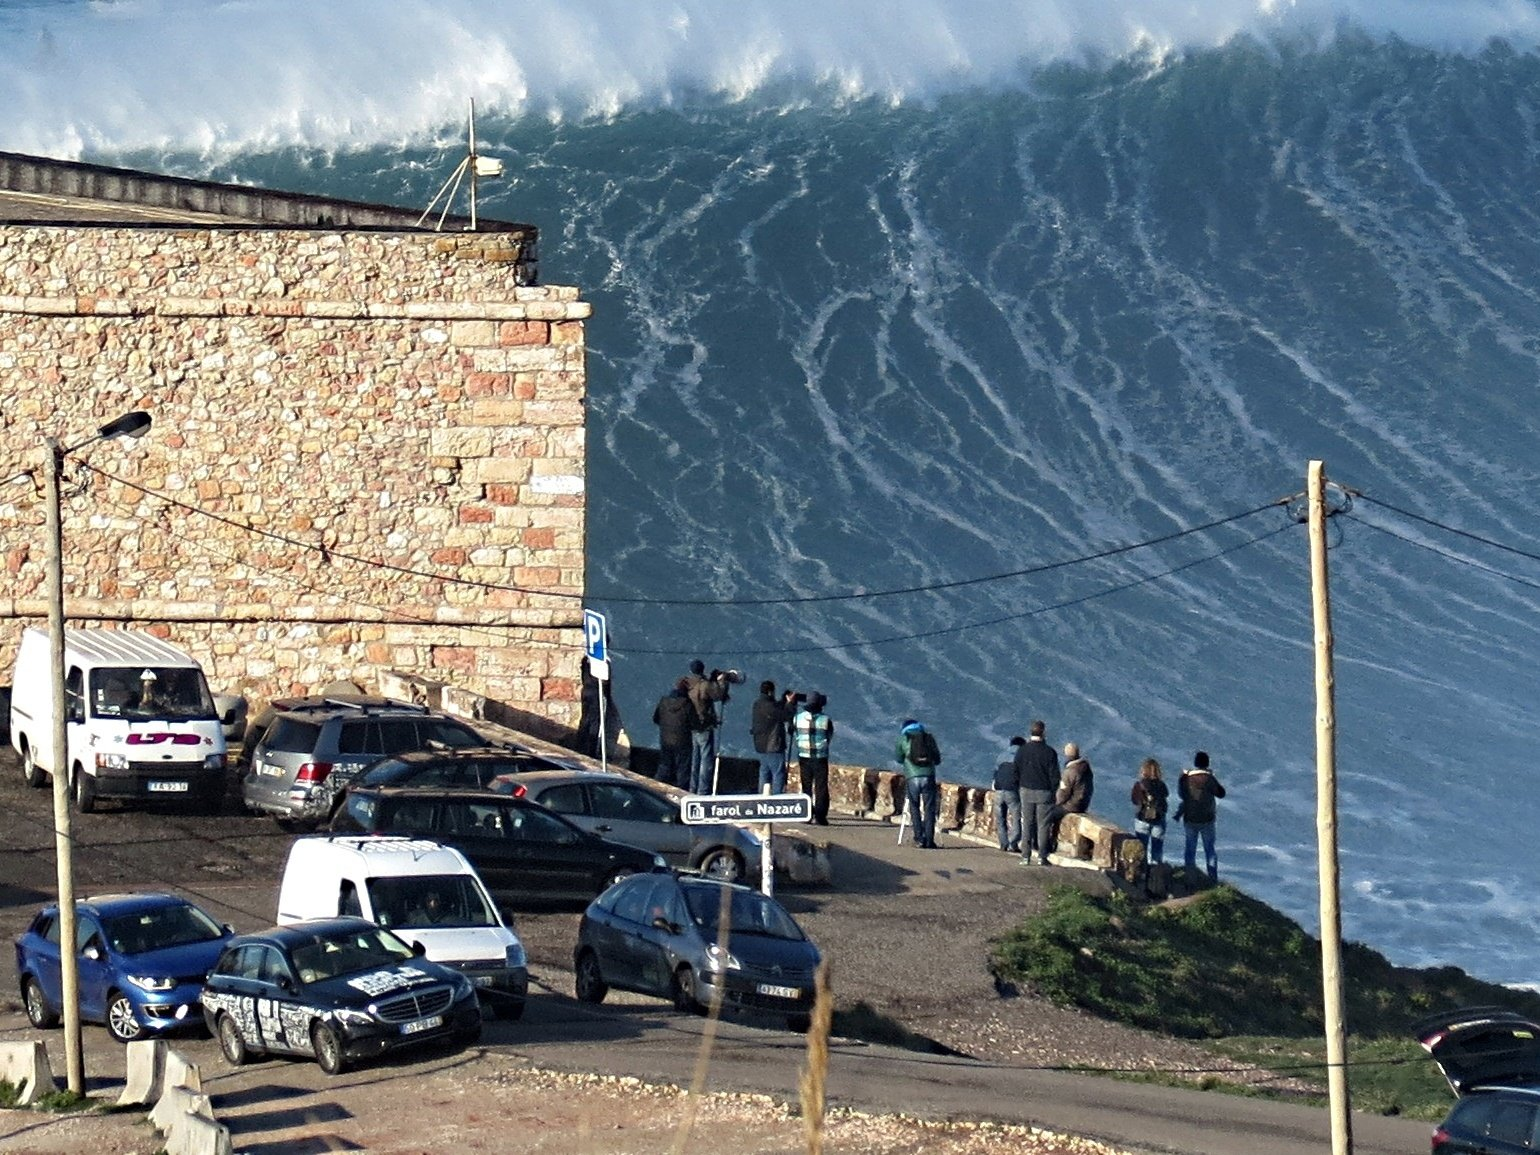 user377930's photo of Nazaré